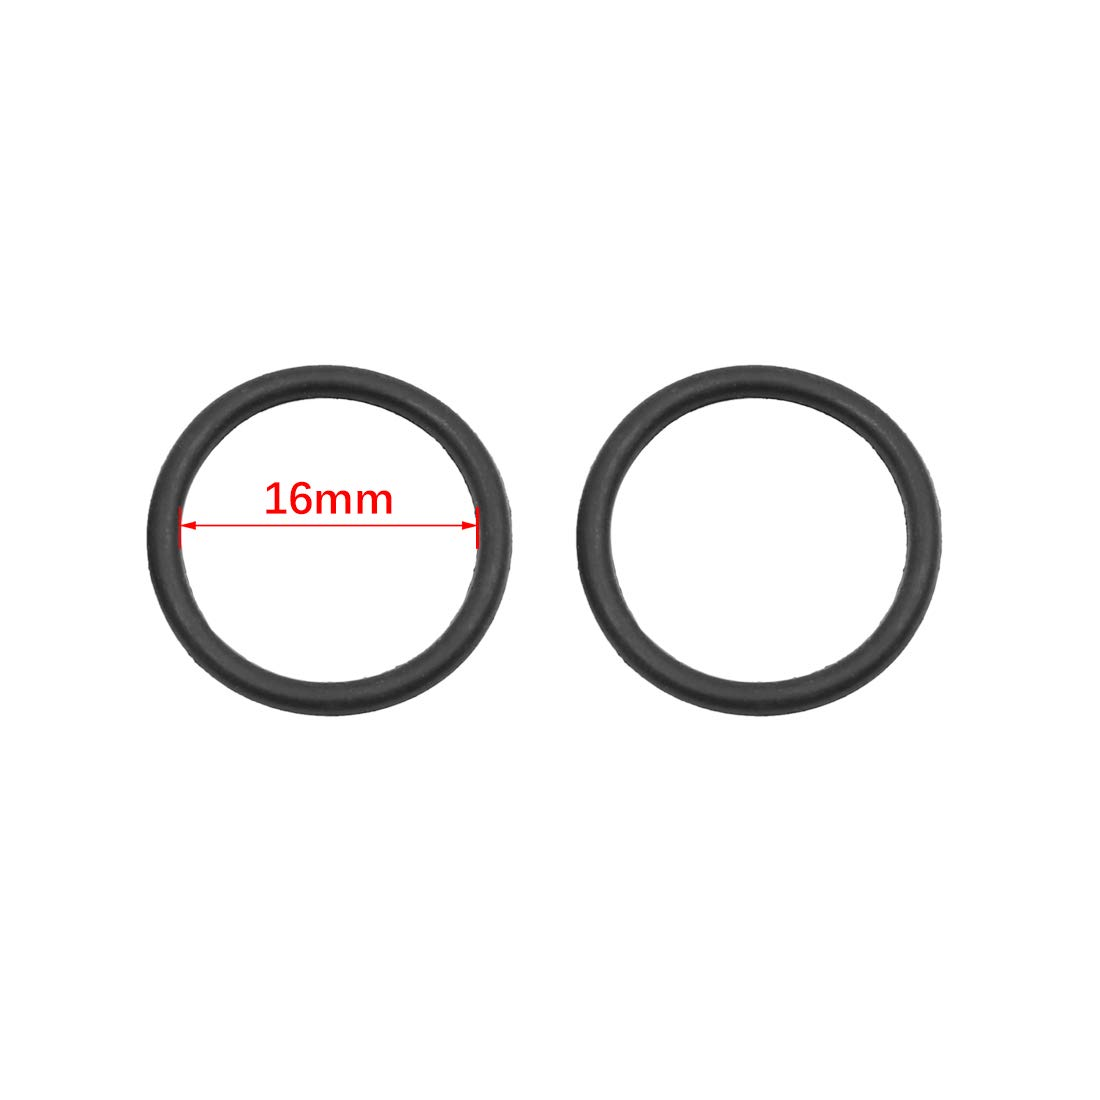 X AUTOHAUX Black NBR O-Ring Seal Gasket Washer for Automotive Car 16 x 1.8mm 100pcs